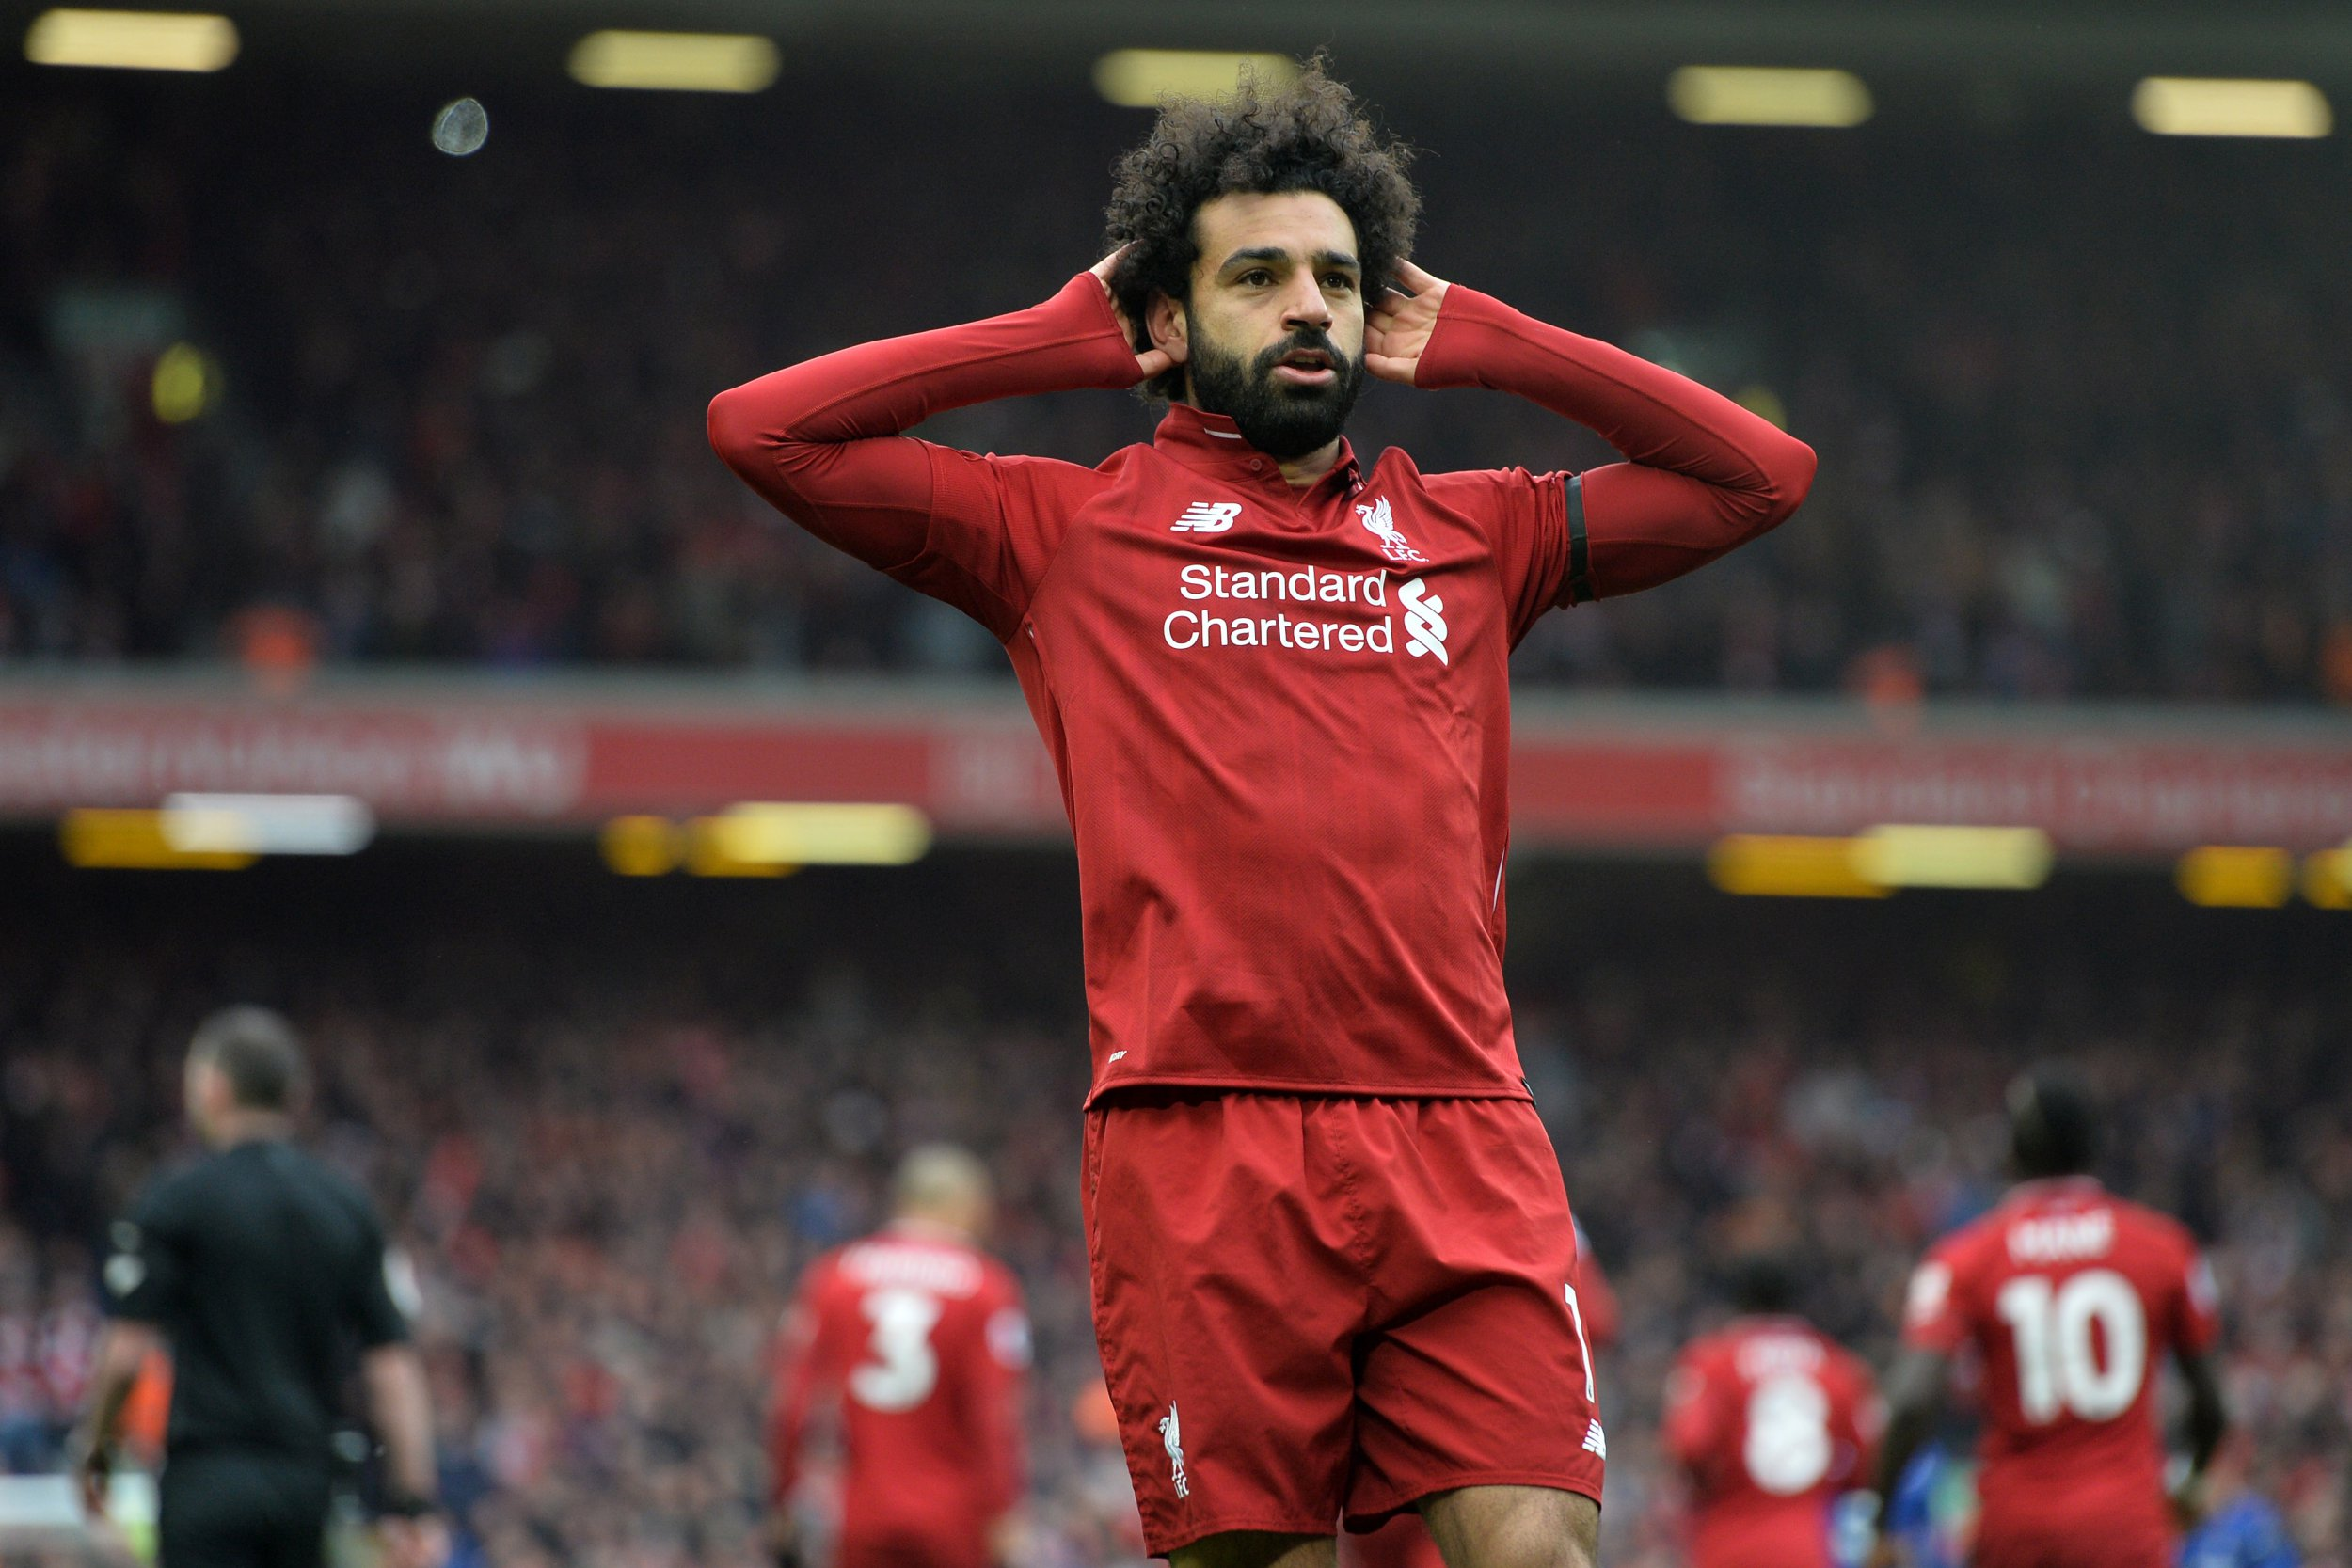 Mohamed Salah predicts Premier League title race after Liverpool's win over Chelsea